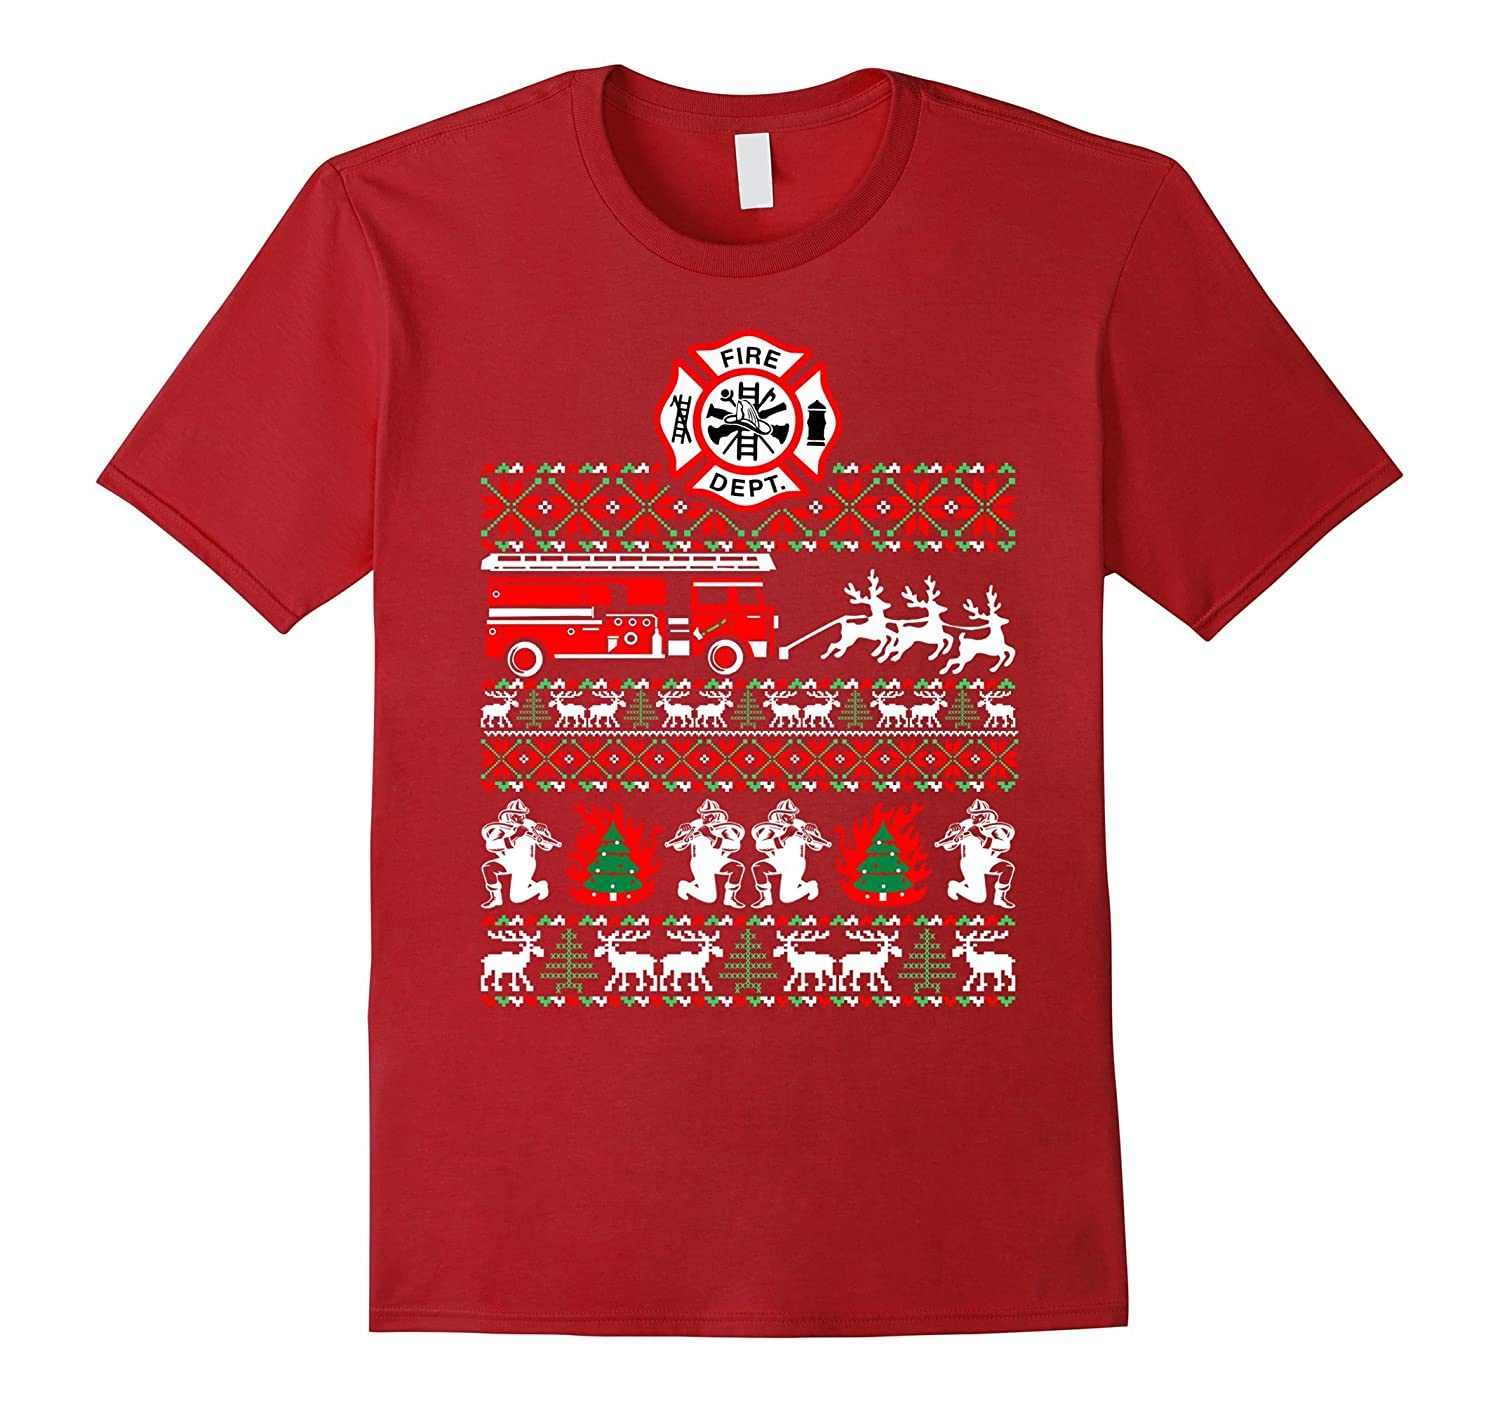 Firefighter Christmas Sweater Ugly TShirt